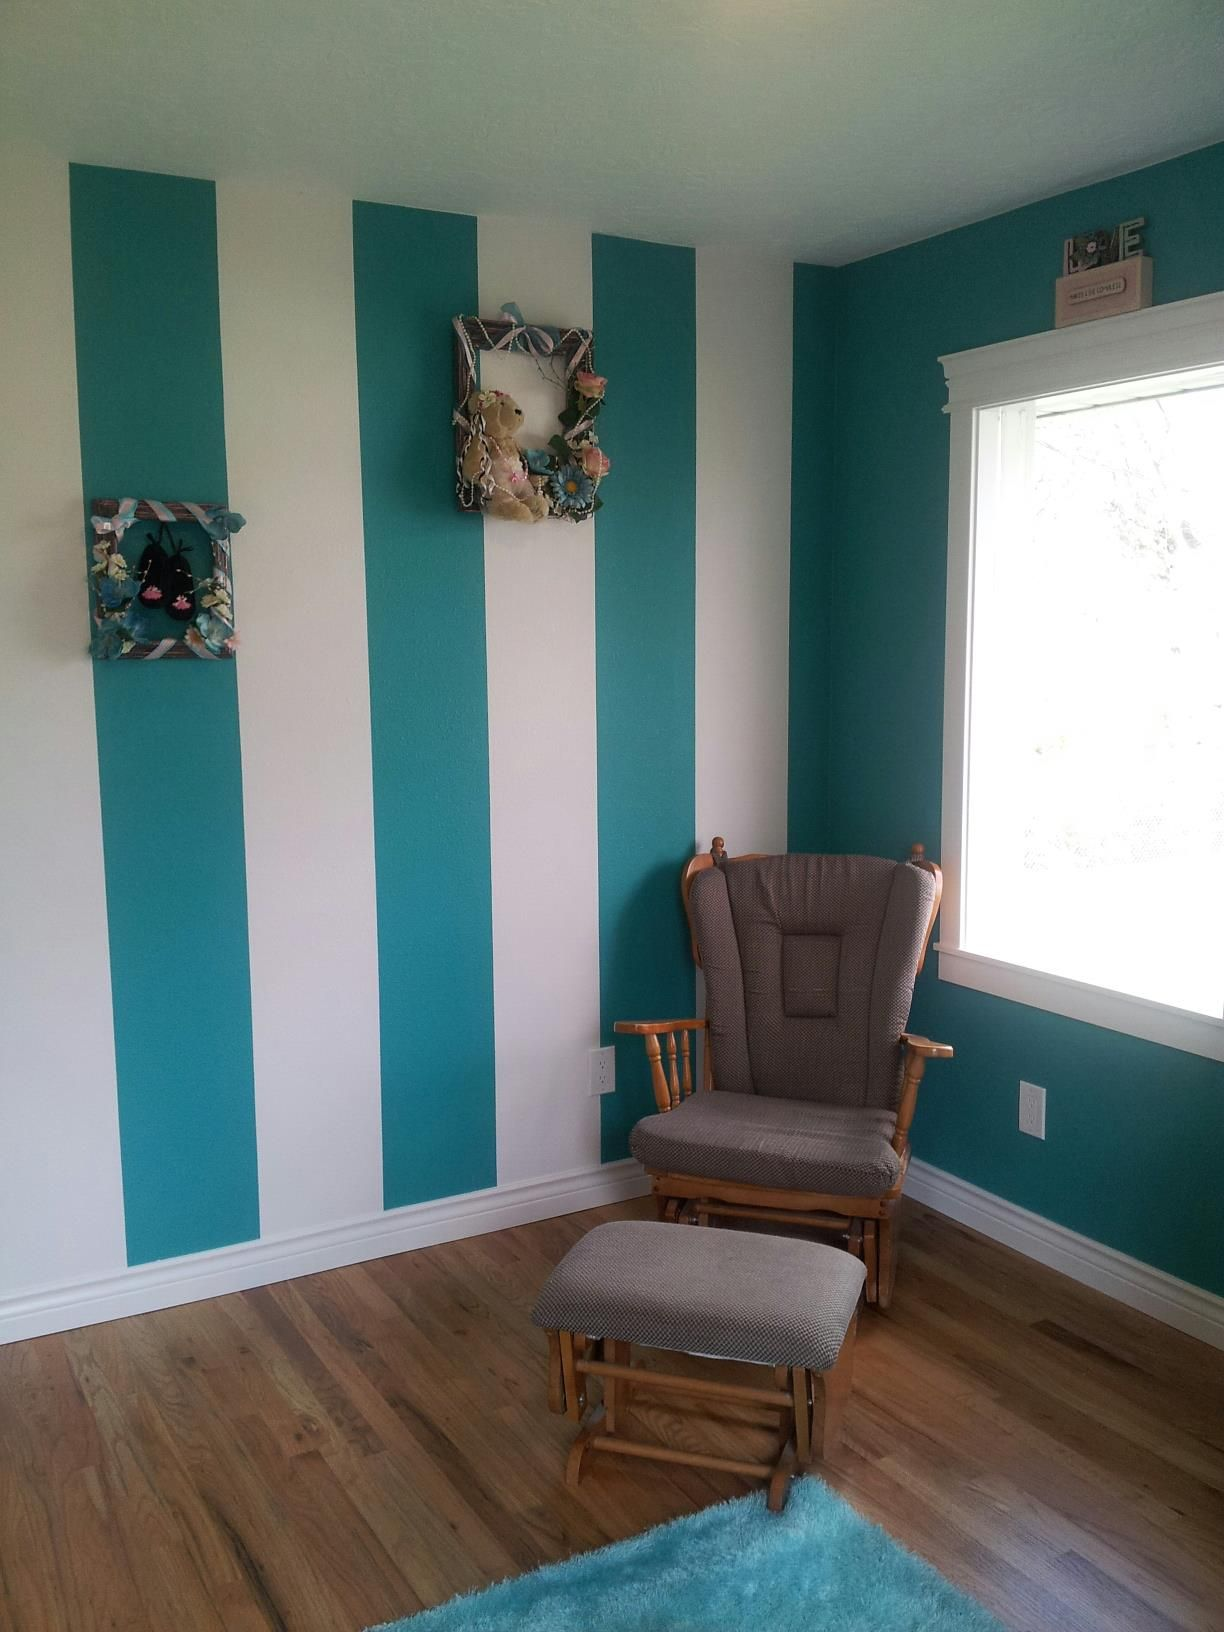 Striped Wall Turquoise And White Turquoise Room Striped Walls Bedroom Turquoise